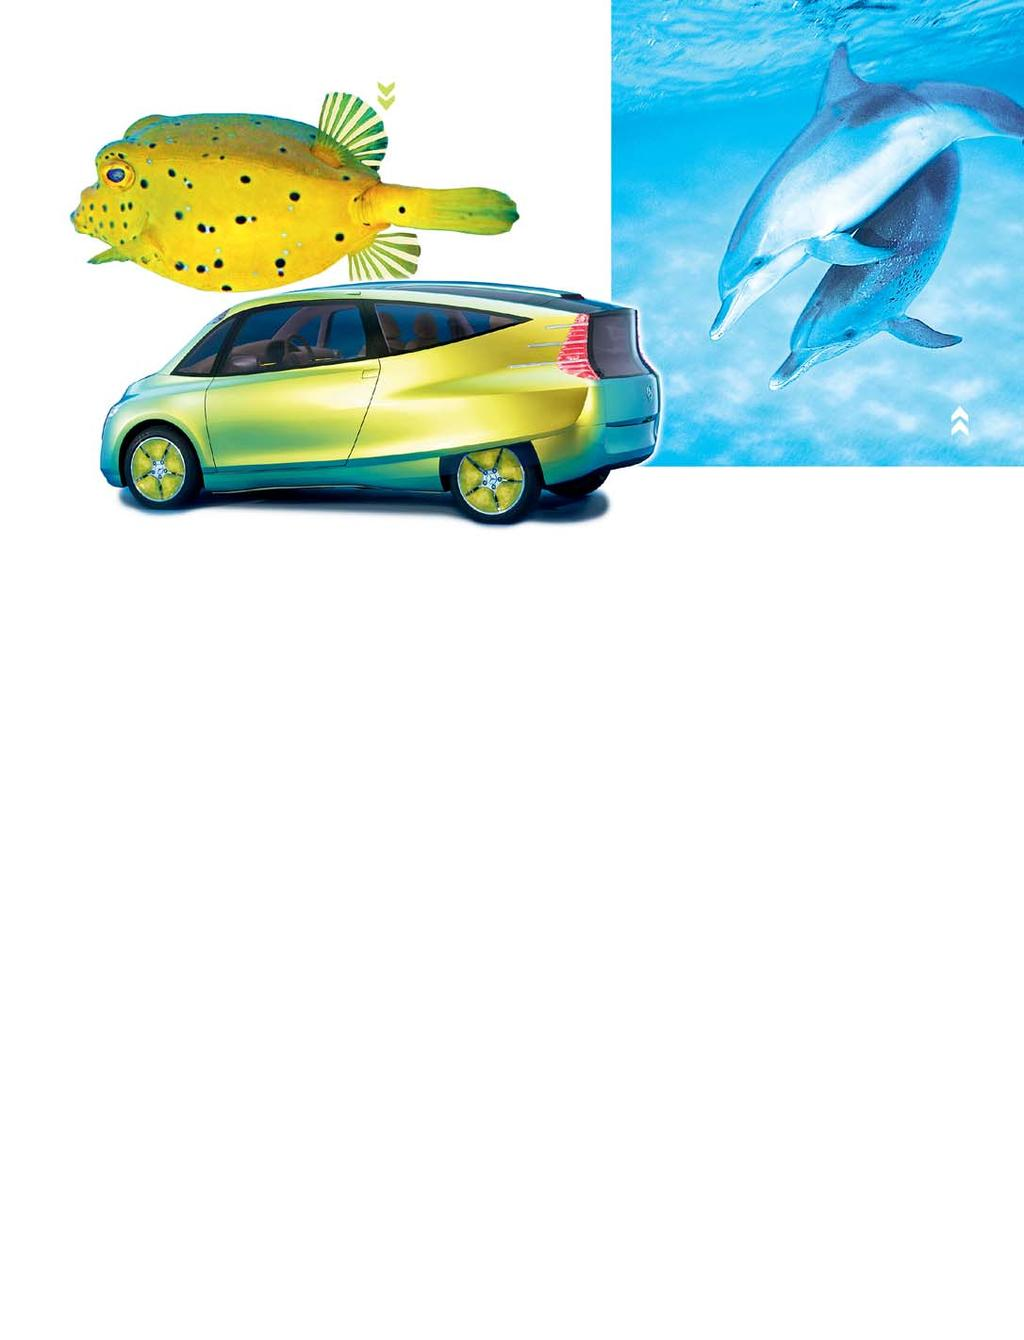 A concept car imitates the surprisingly low-drag and stable design of the boxfish Sonar in dolphins is superior to the human imitation Who deserves the credit?